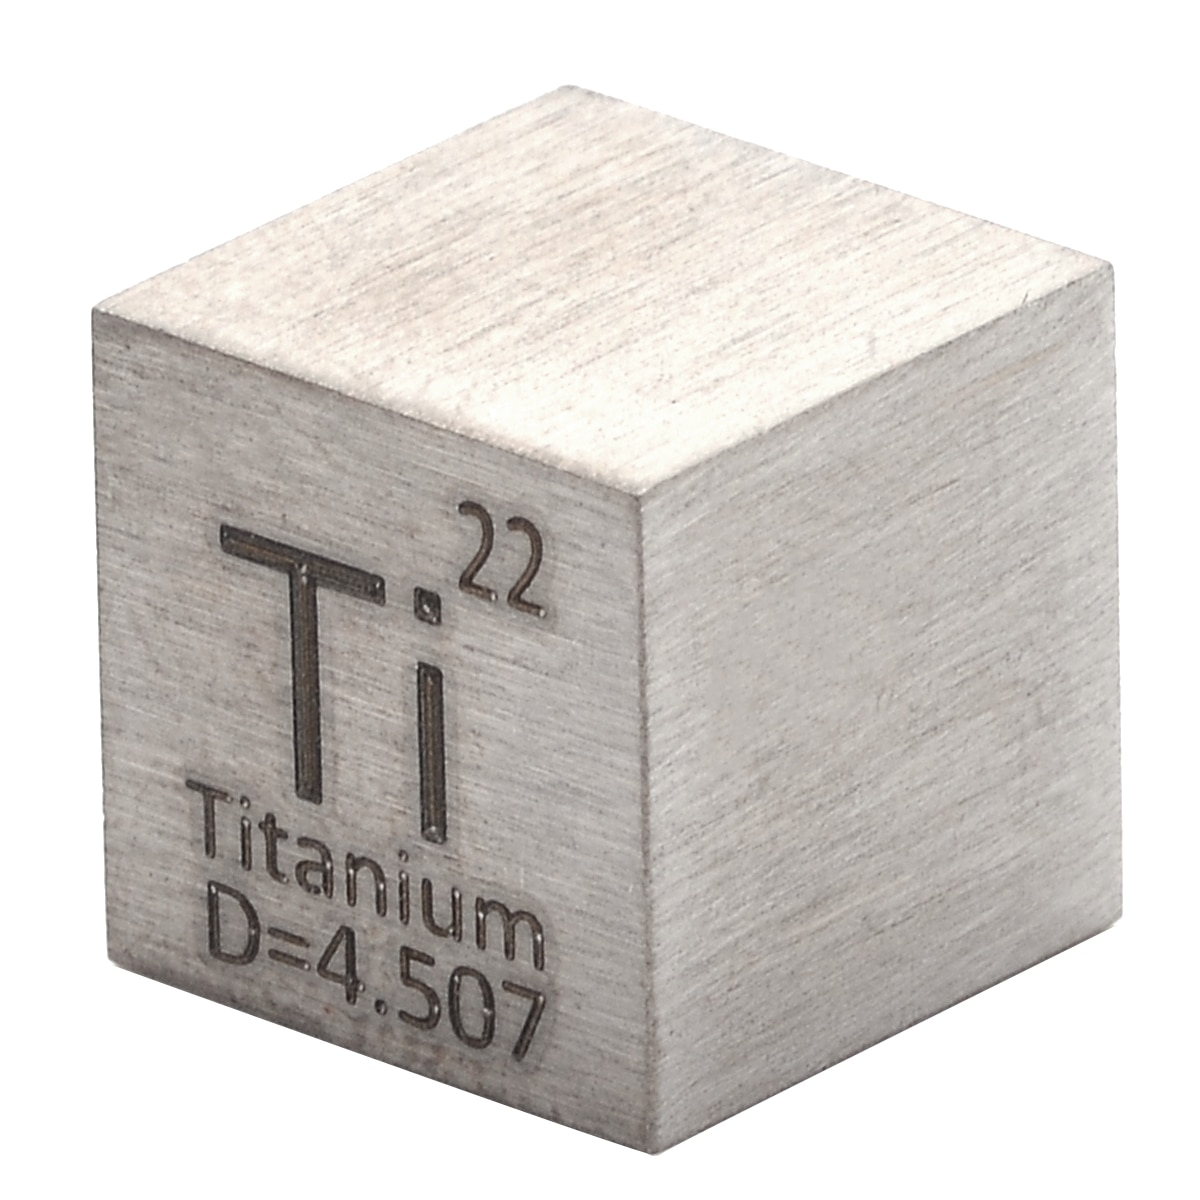 1Pcs 99.5% Pure Titanium High Purity Cube Ti Metal Carved Element Periodic Table Class Teaching Supplies 10x10x10mm